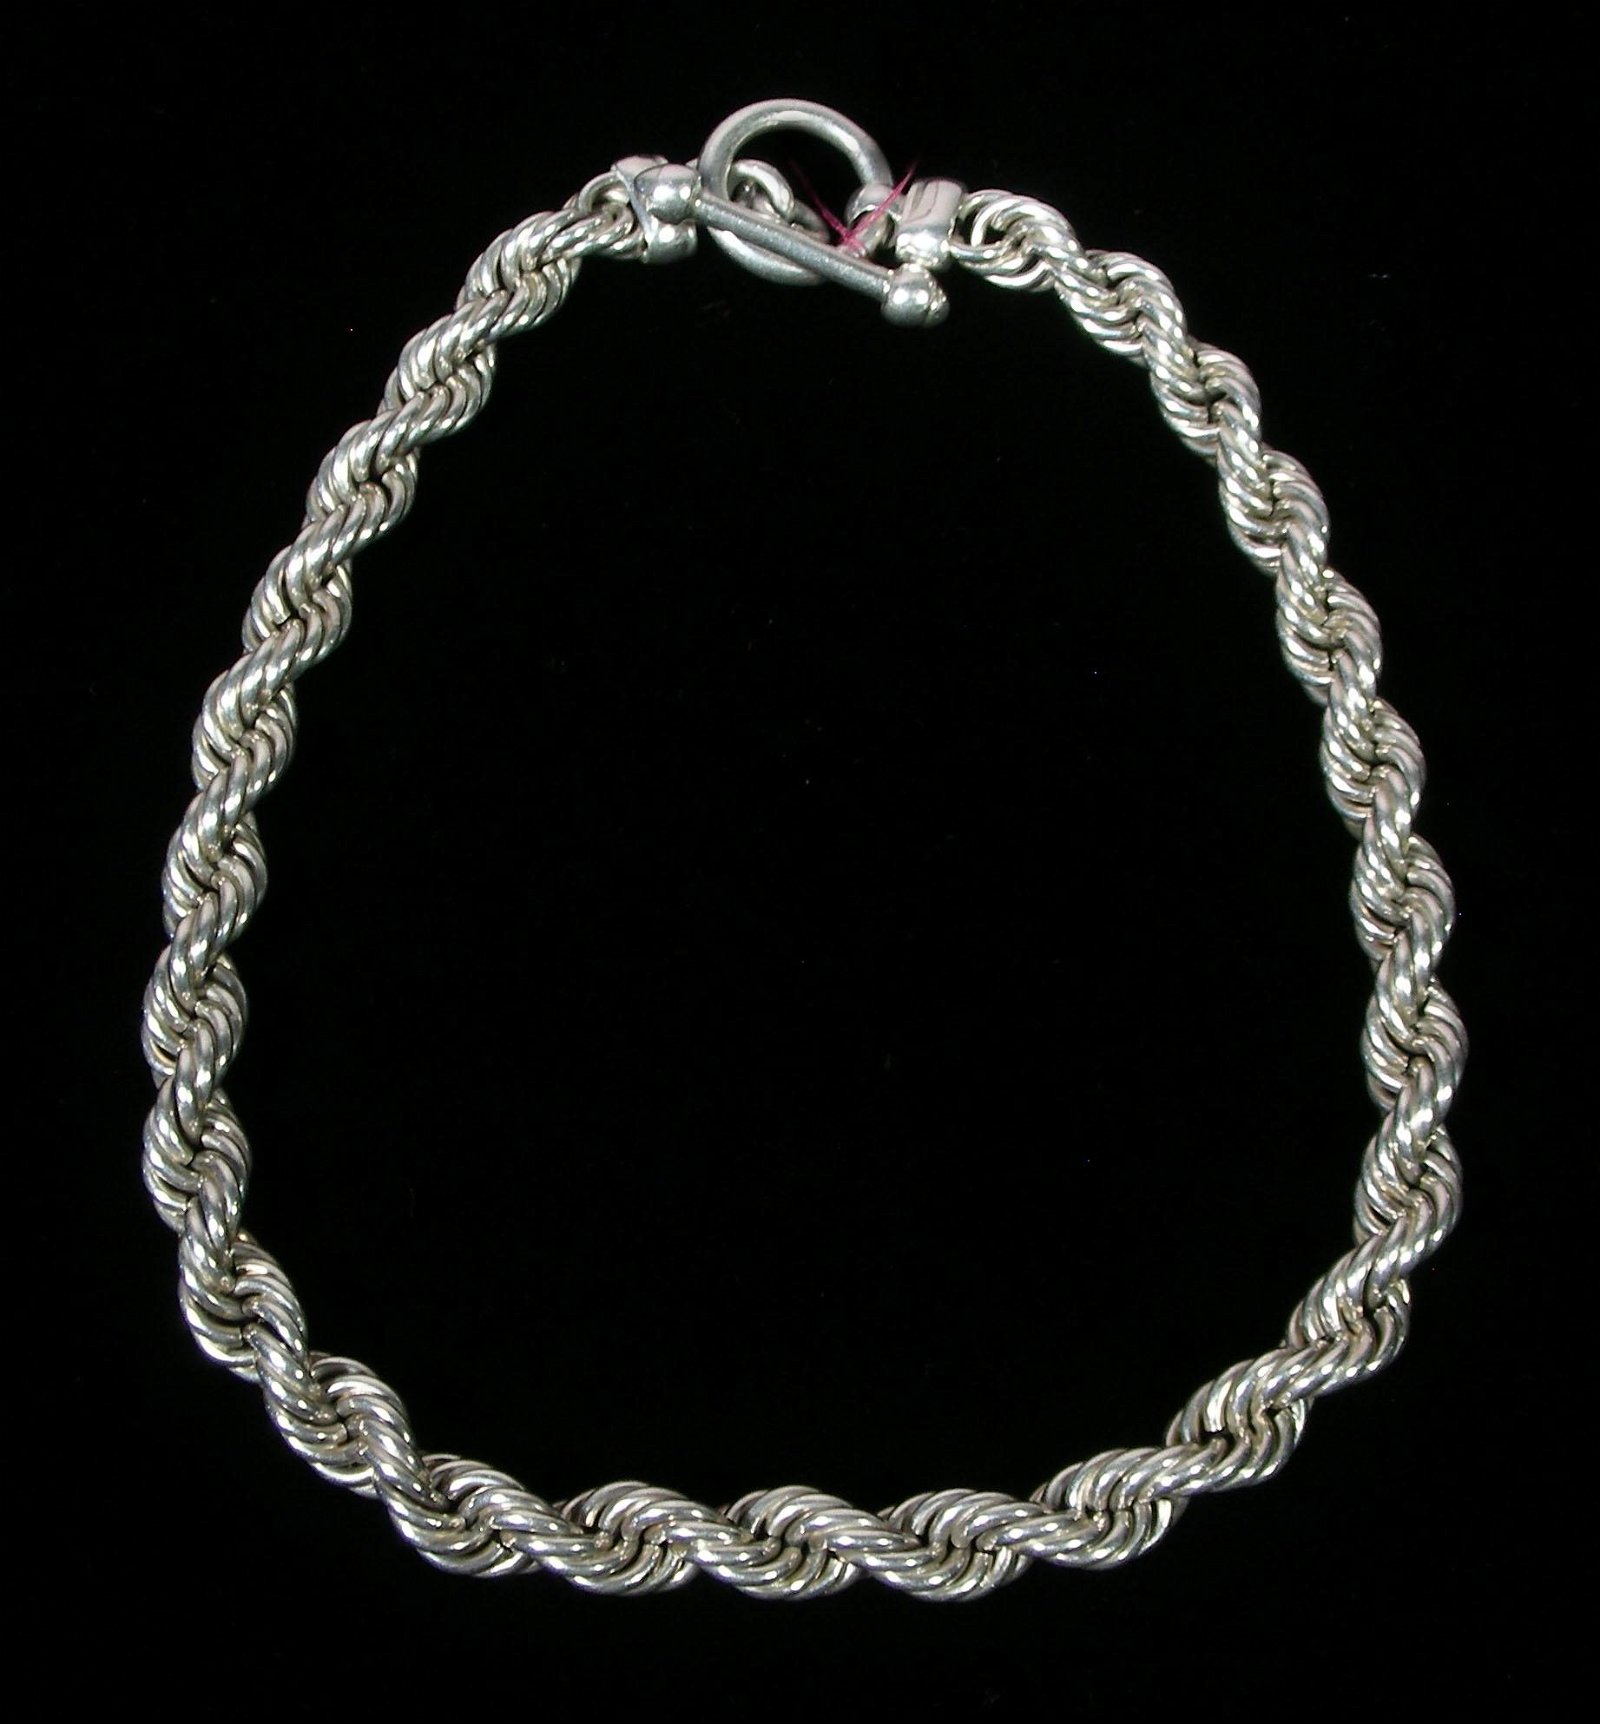 LADIES HEAVY STERLING SILVER ROPE NECKLACE